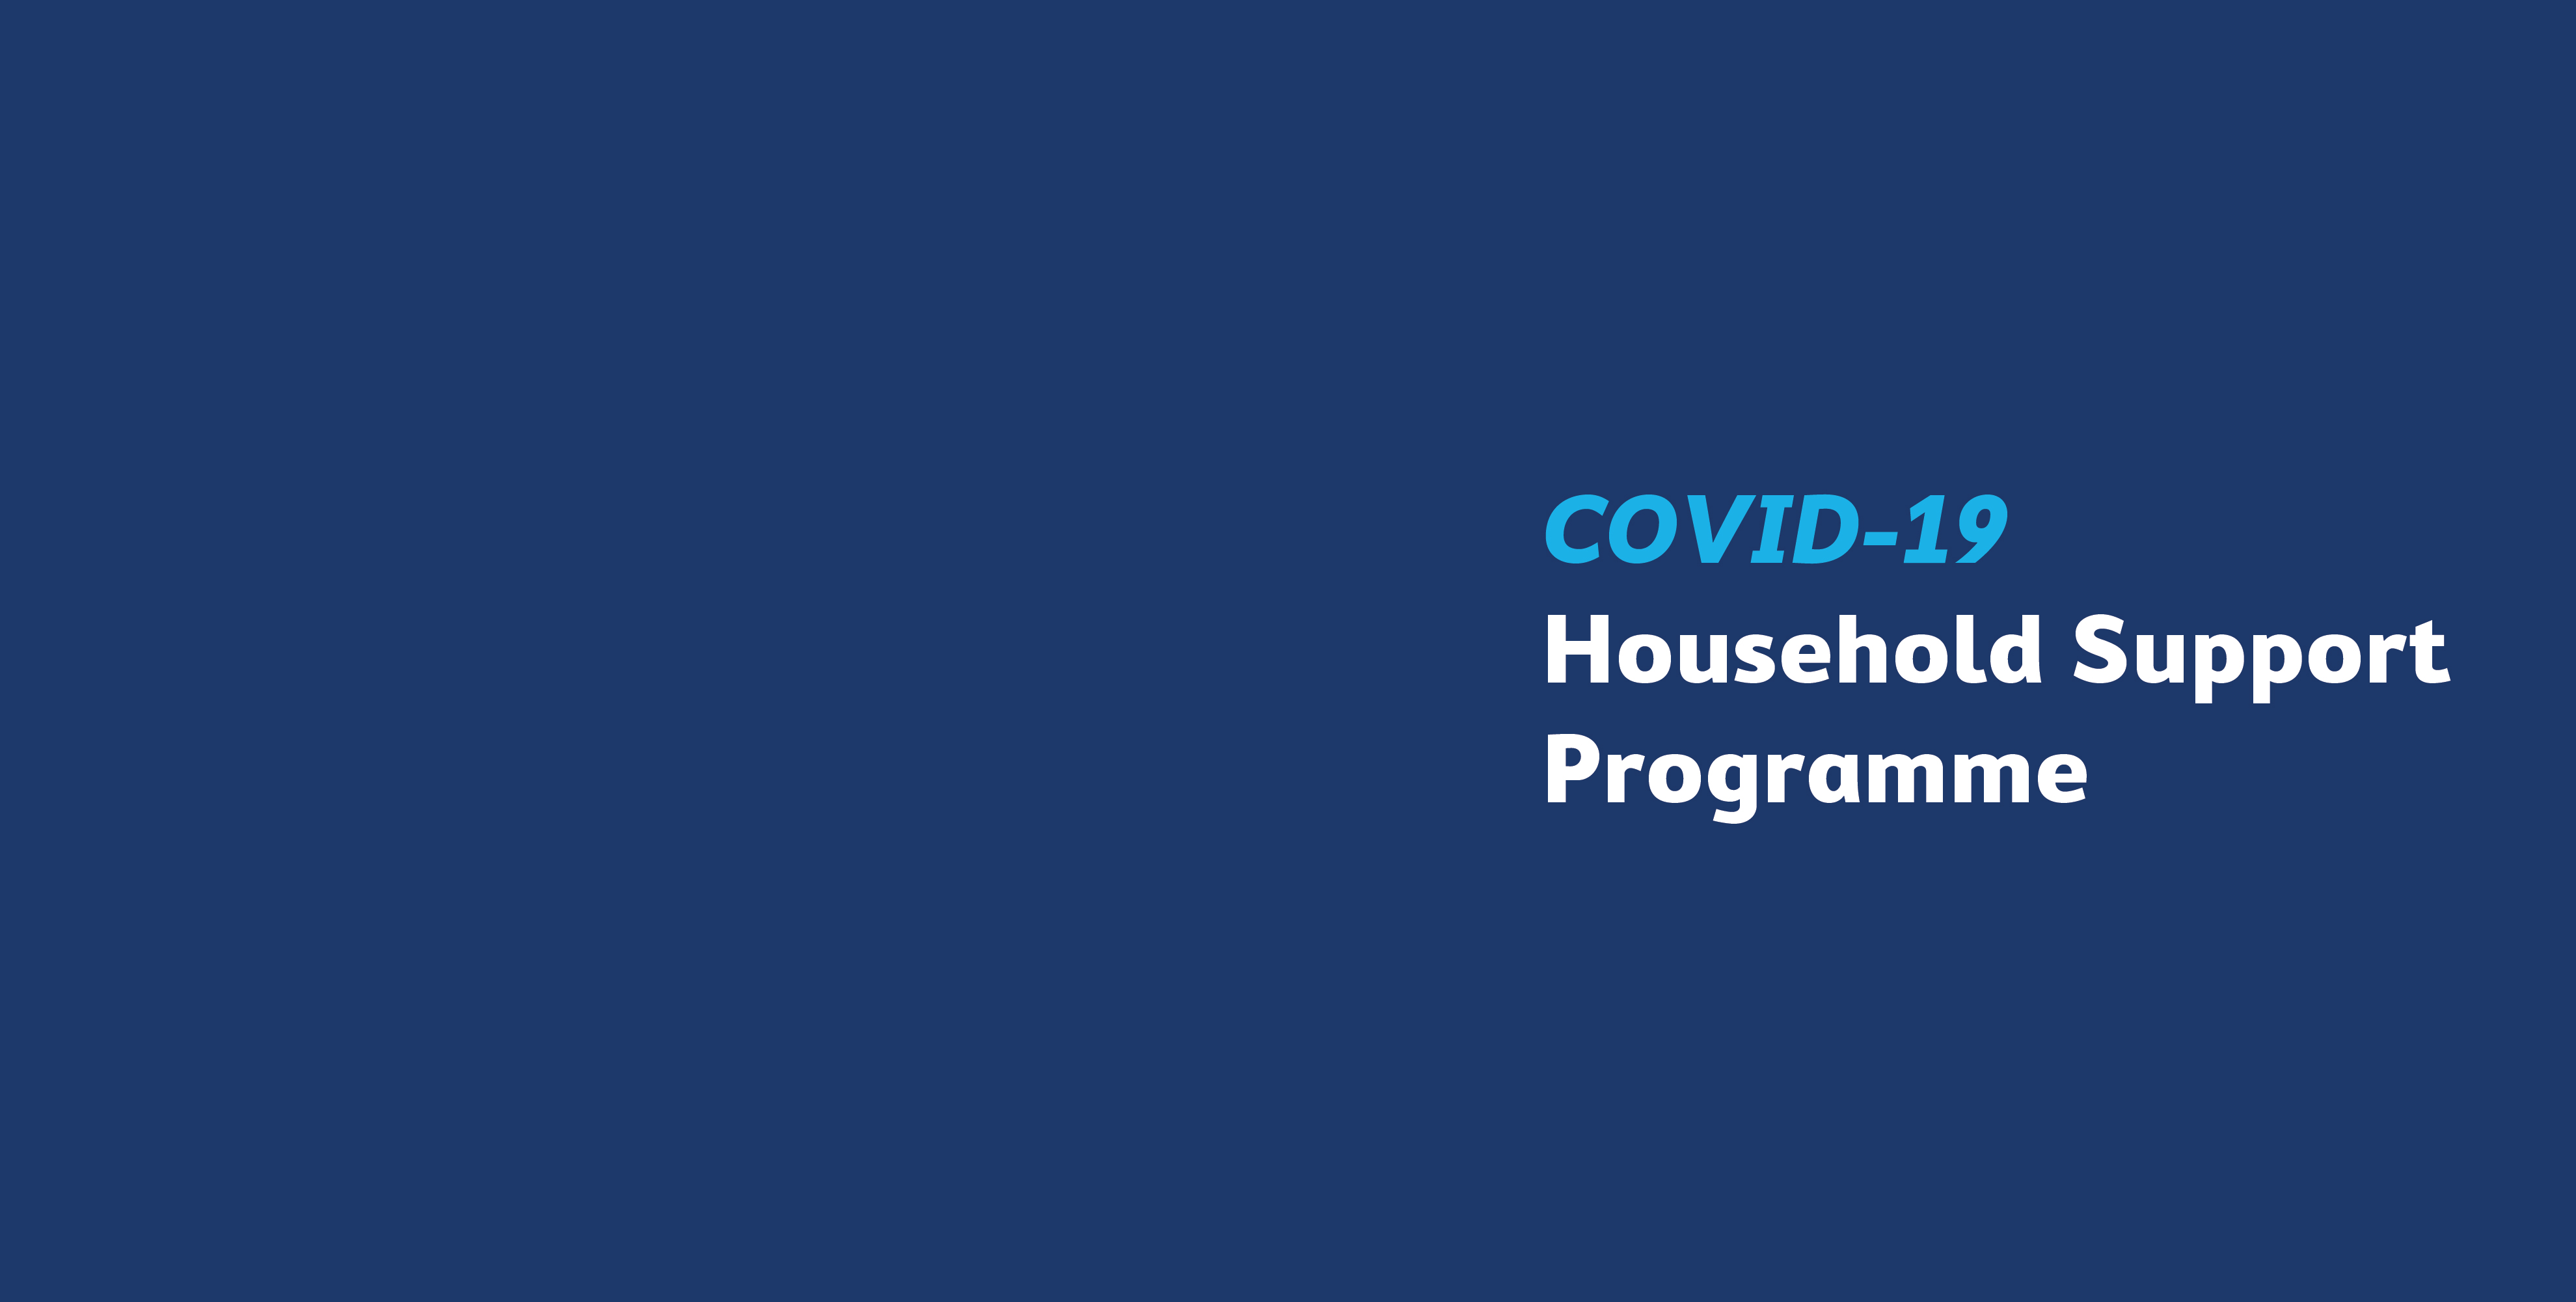 COVID-19 Household Support Programme